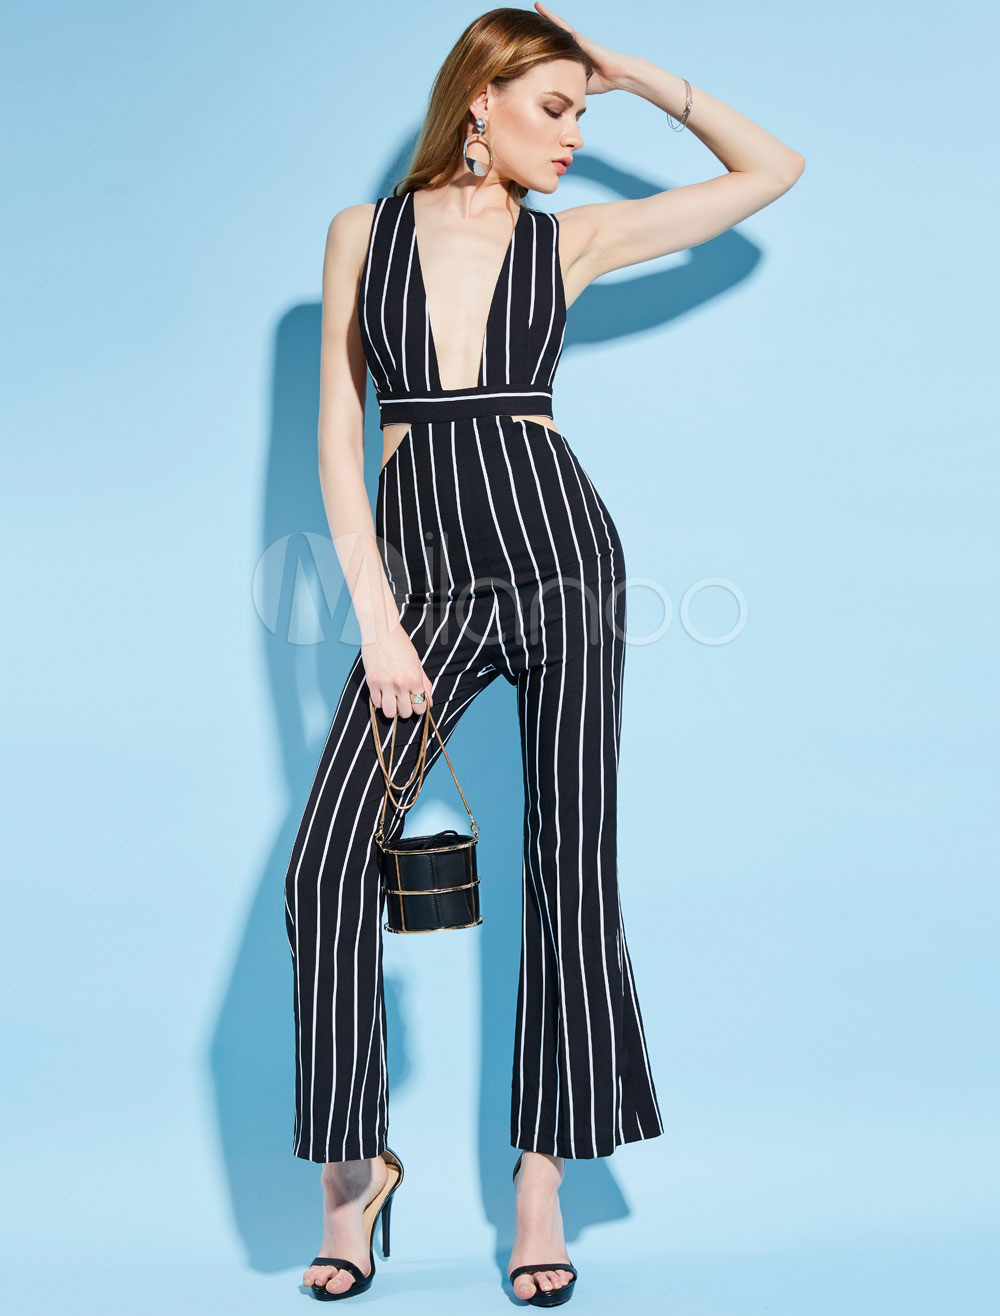 Buy Blue Long Jumpsuit Plunging Neck Sleeveless Cut Out Striped Backless Flared Leg Women's Summer Jumpsuit for $39.99 in Milanoo store